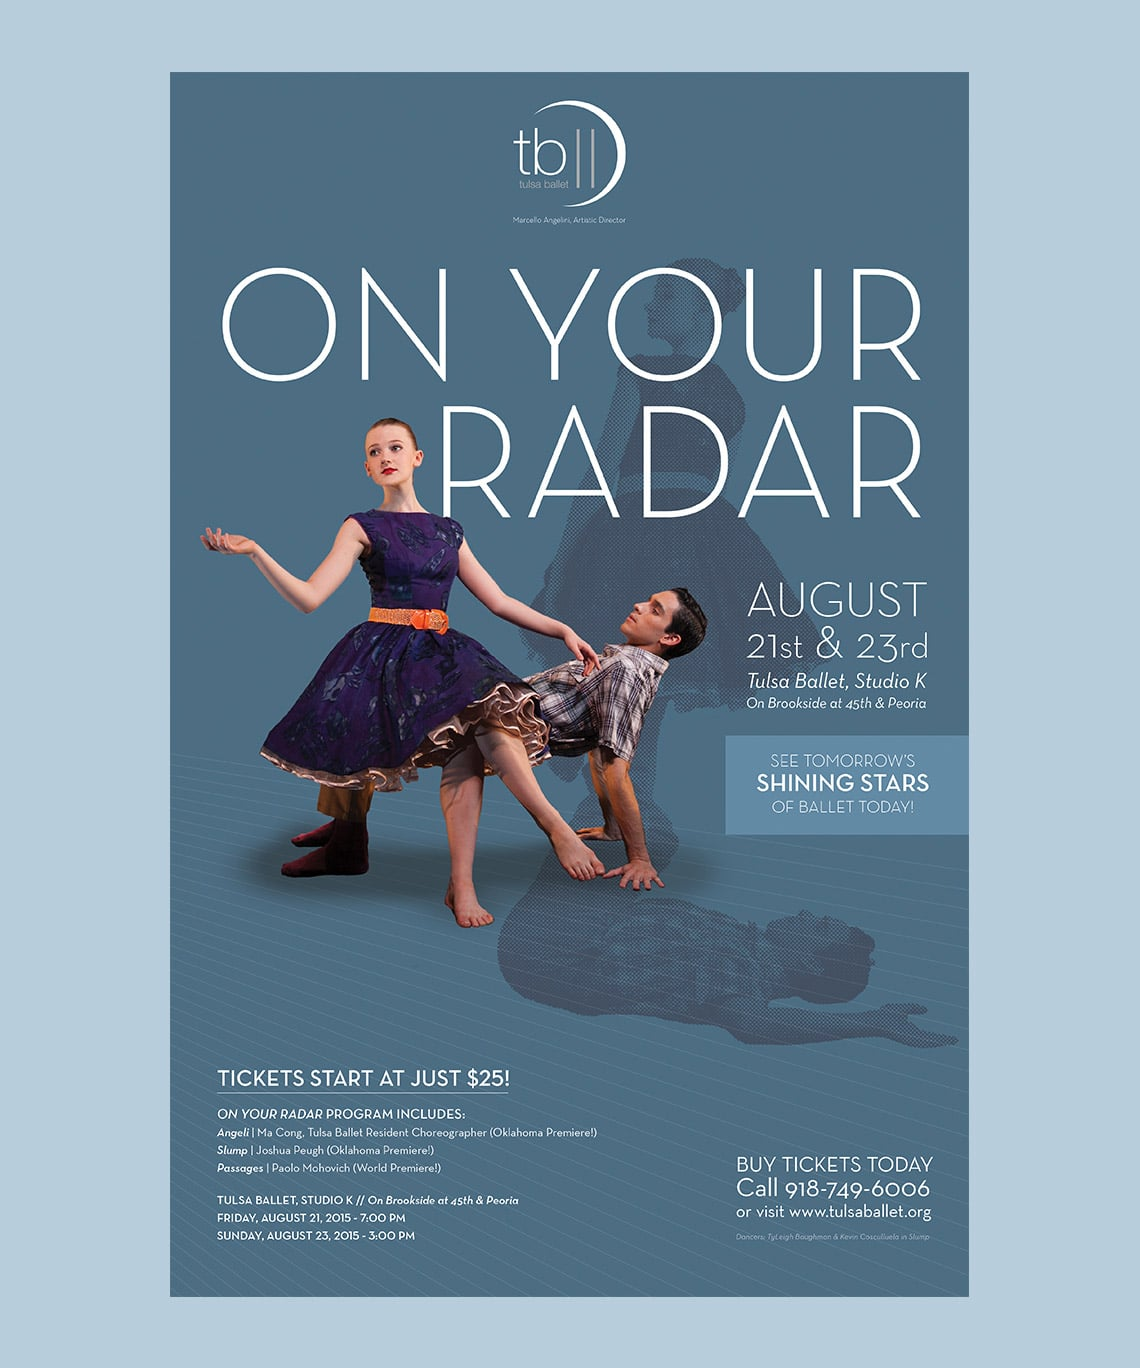 On Your Radar Poster Image